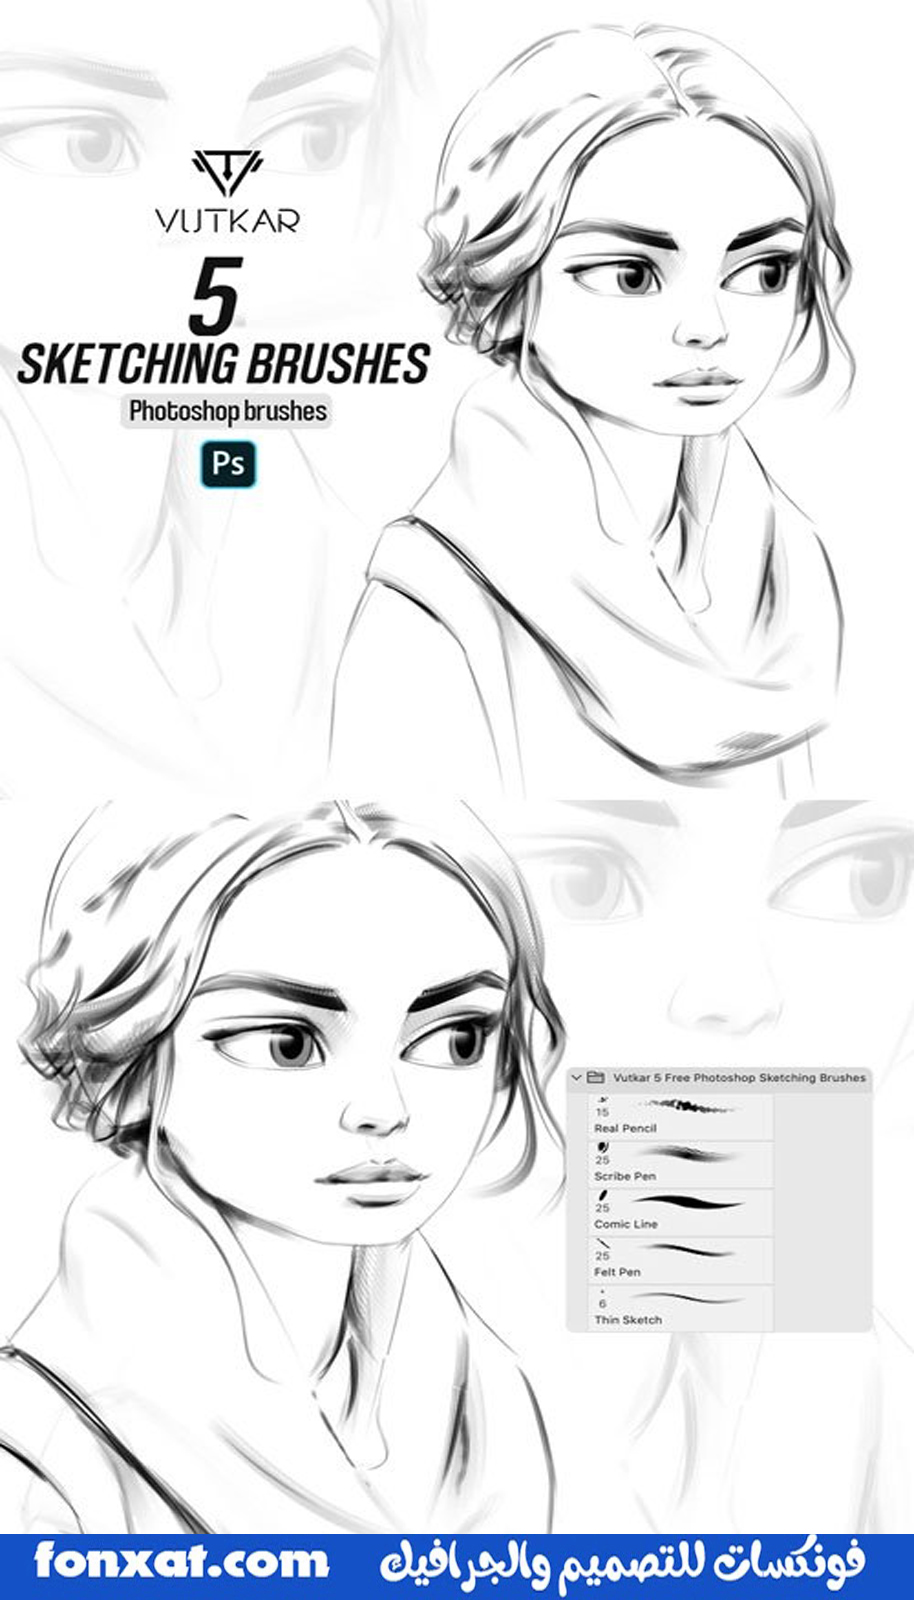 Download brushes for painting, professional brushes for Photoshop, free download